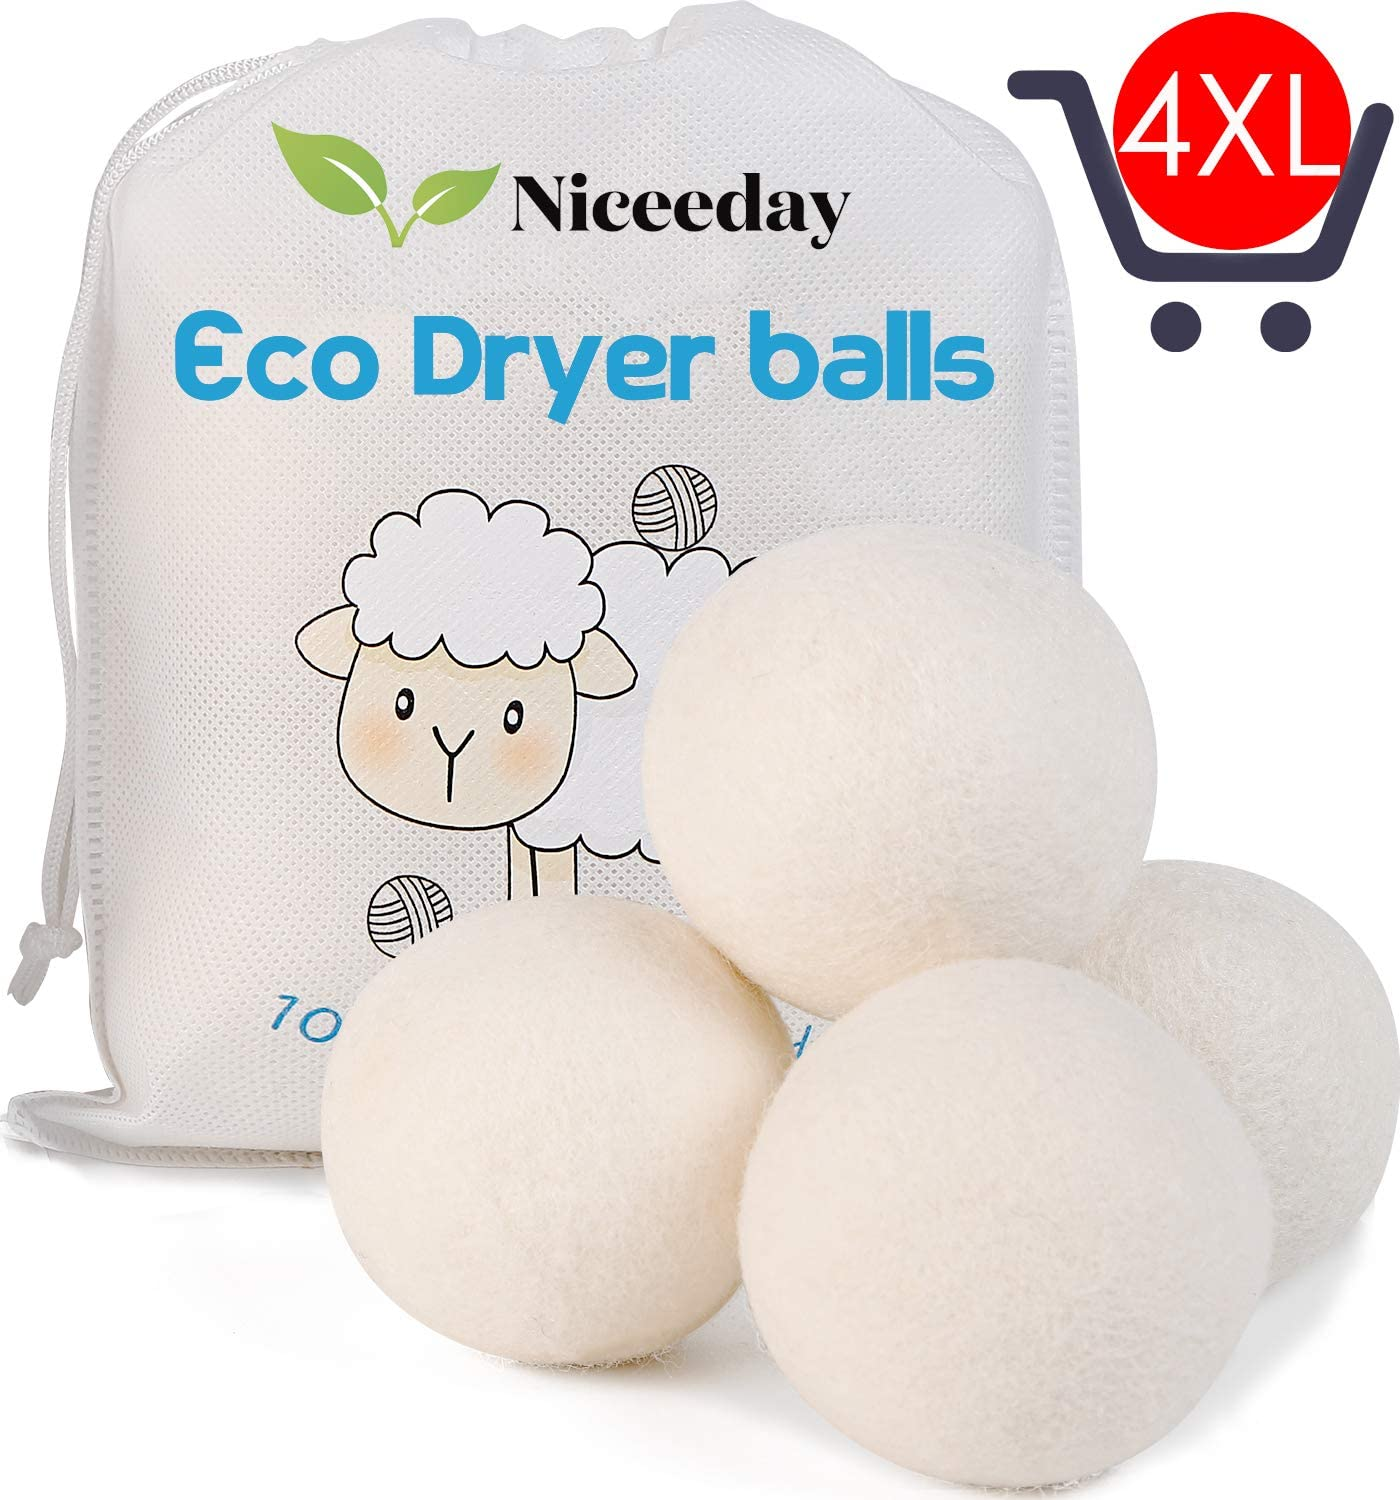 Wool Dryer Balls XL, Handmade Organic Dryer Balls Laundry Reusable Natural Fabric Softener, Dryer Sheets Alternative, 100% New Zealand Wool Extra-Large Dryer Ball,Reduce Wrinkles & Saves Drying Time